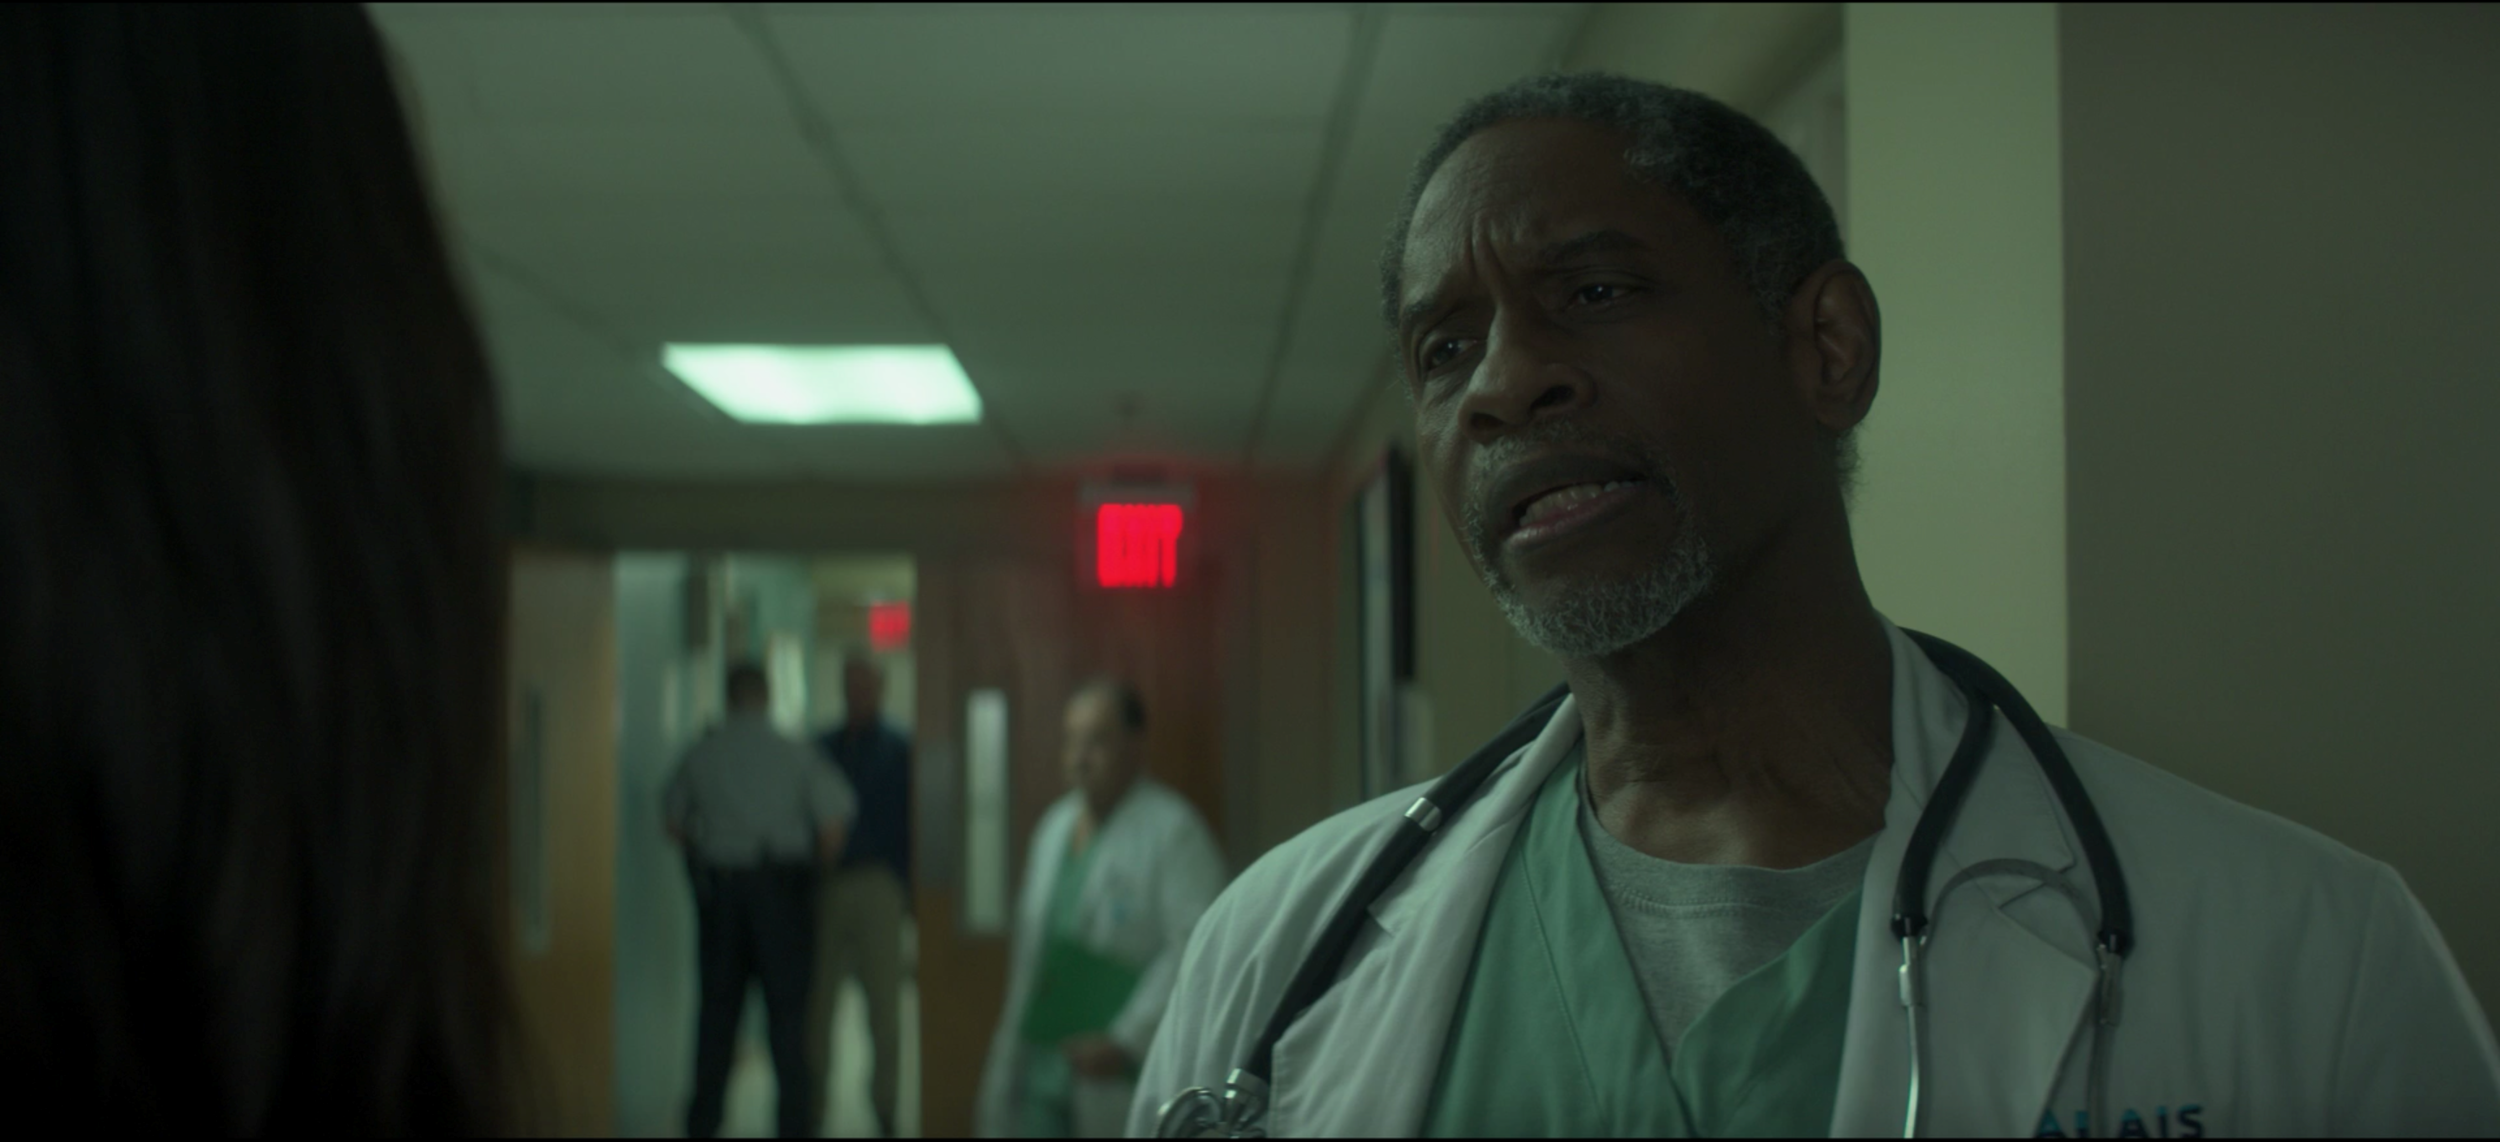 Also deserving of a screen grab after his second episode appearance, Tim Russ. Fellow Sci-Fi fans rejoice!